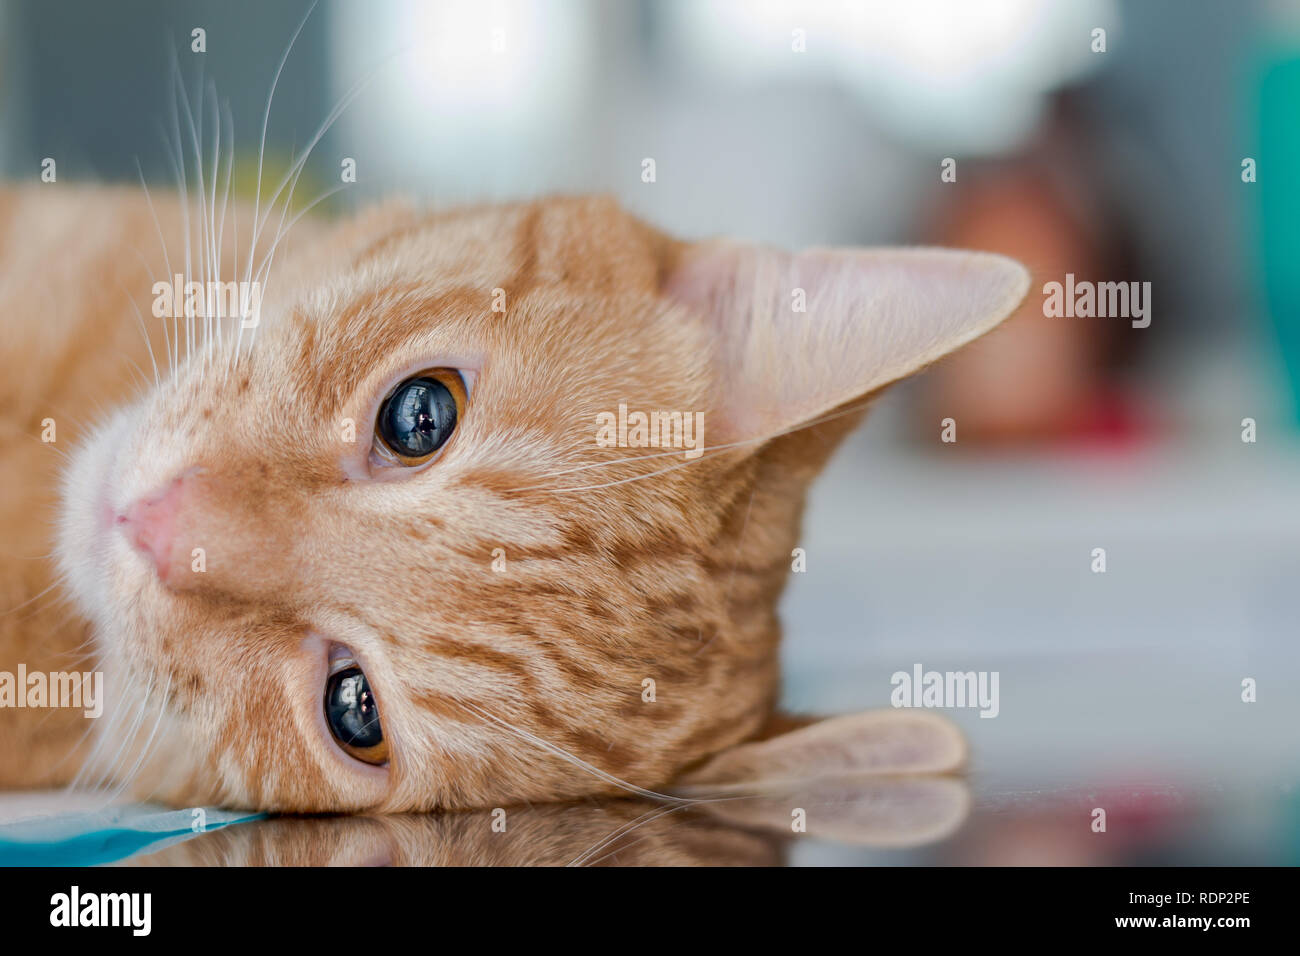 Adult Ginger cat, sedated on table at the veterinary clinic with ketamine - Stock Image